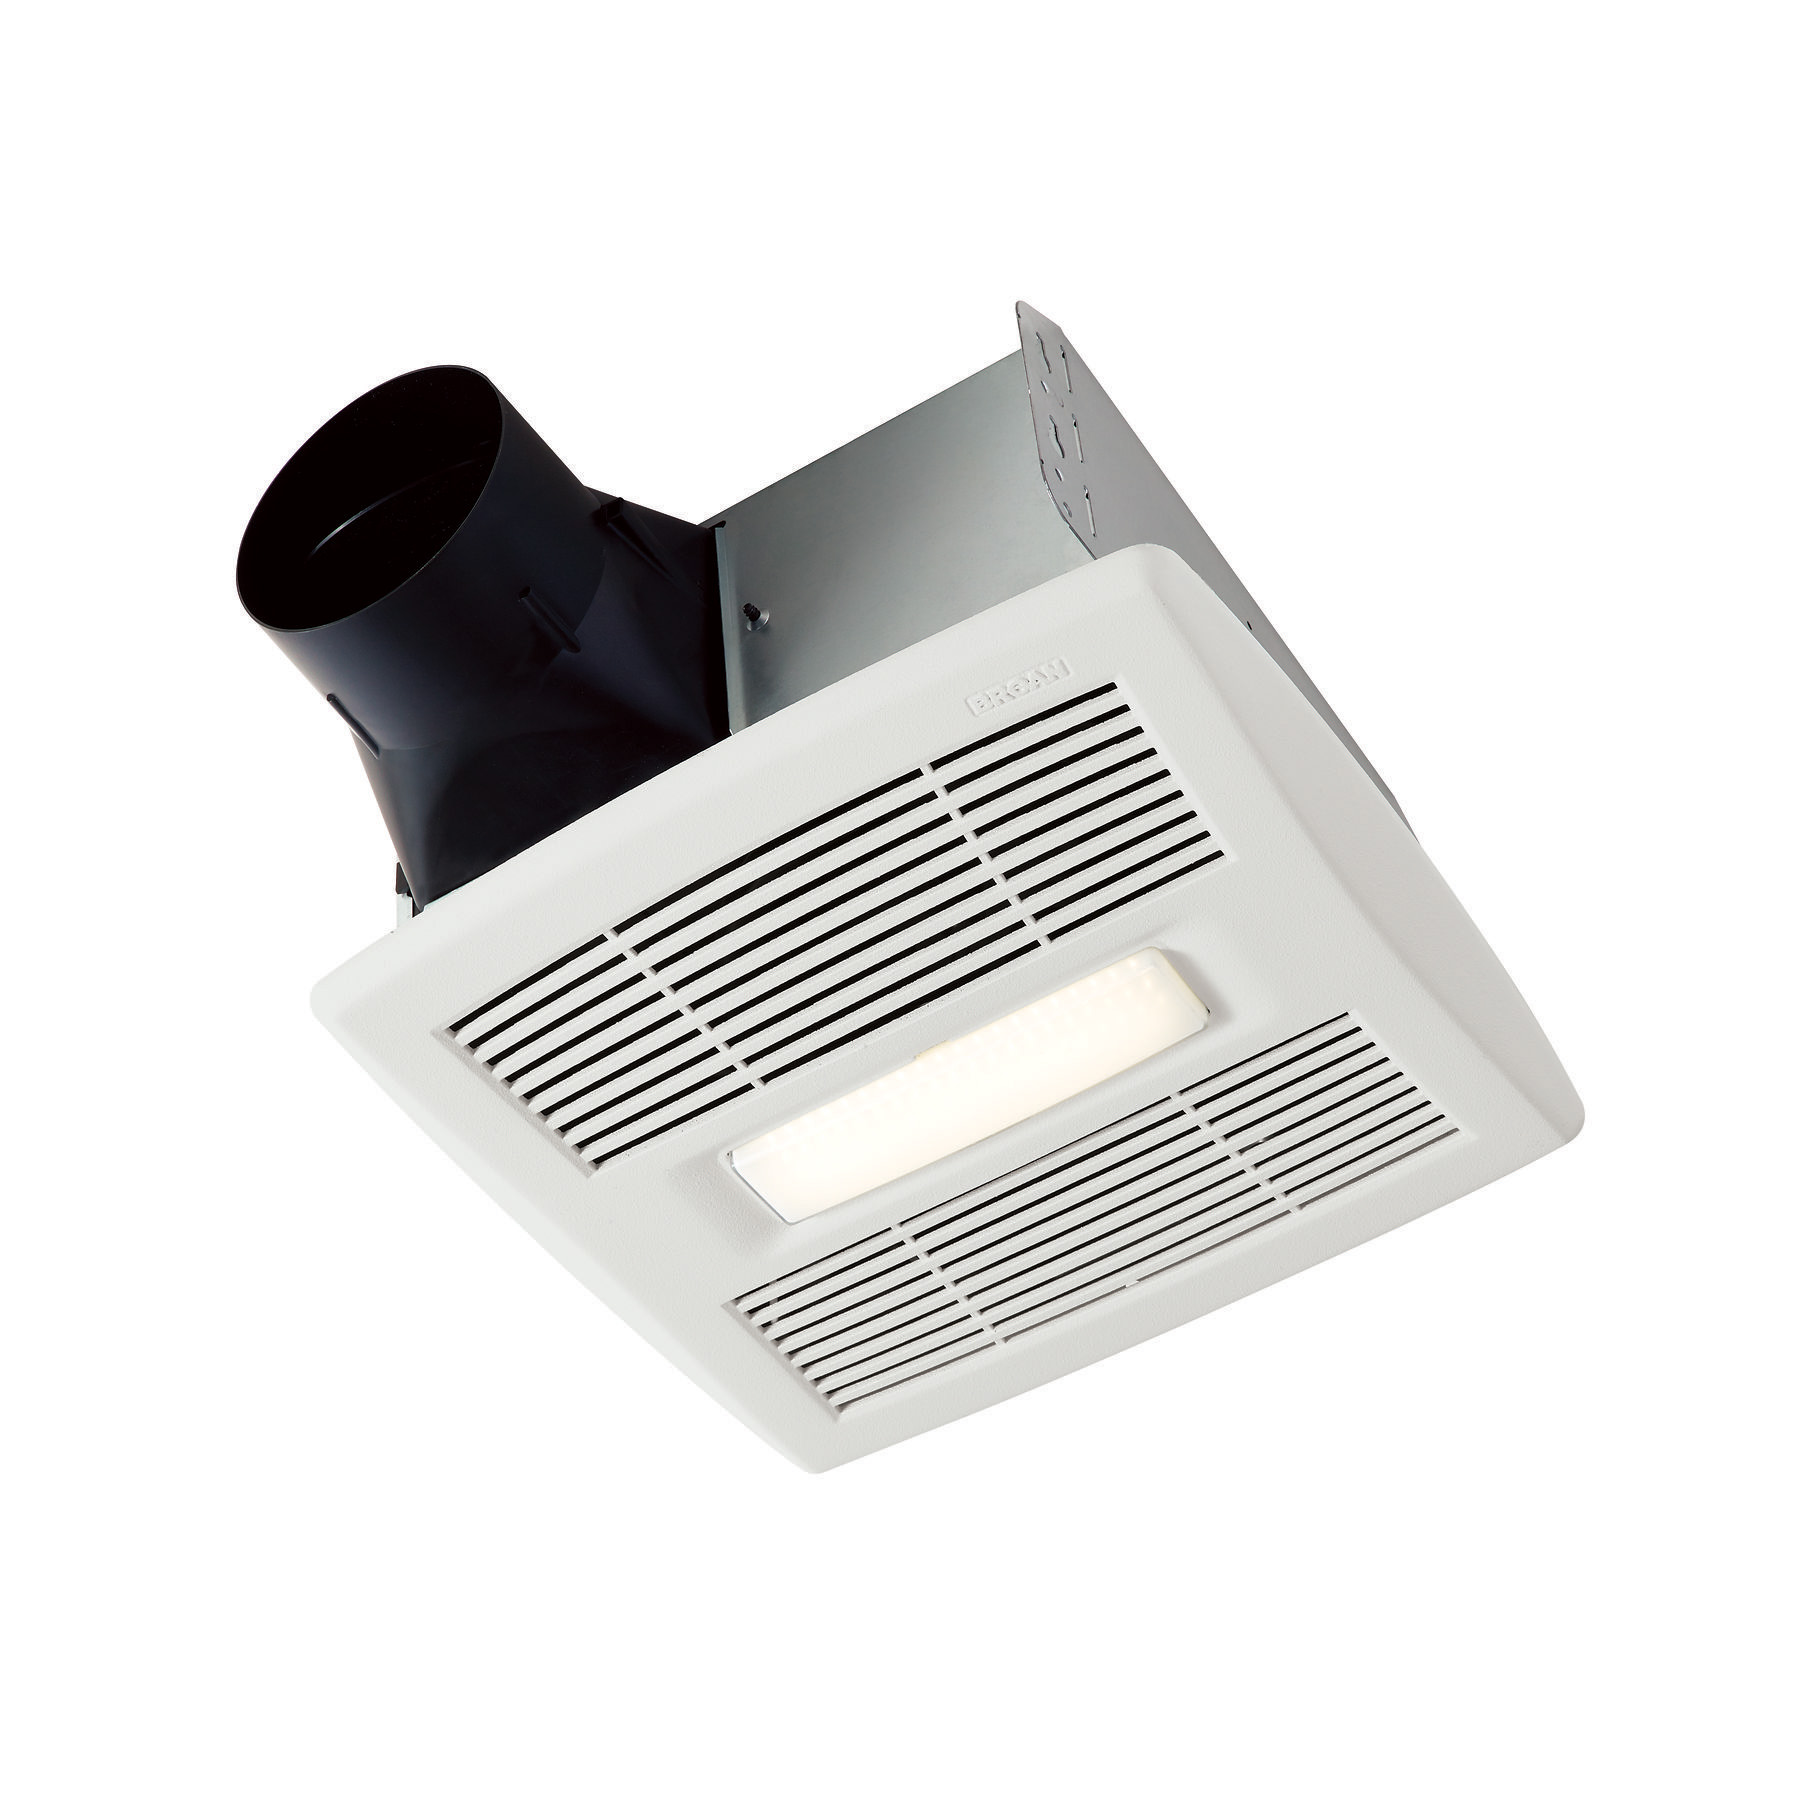 Nutone Bathroom Fan With Light not your average bath fan: performance meets elegance with the new